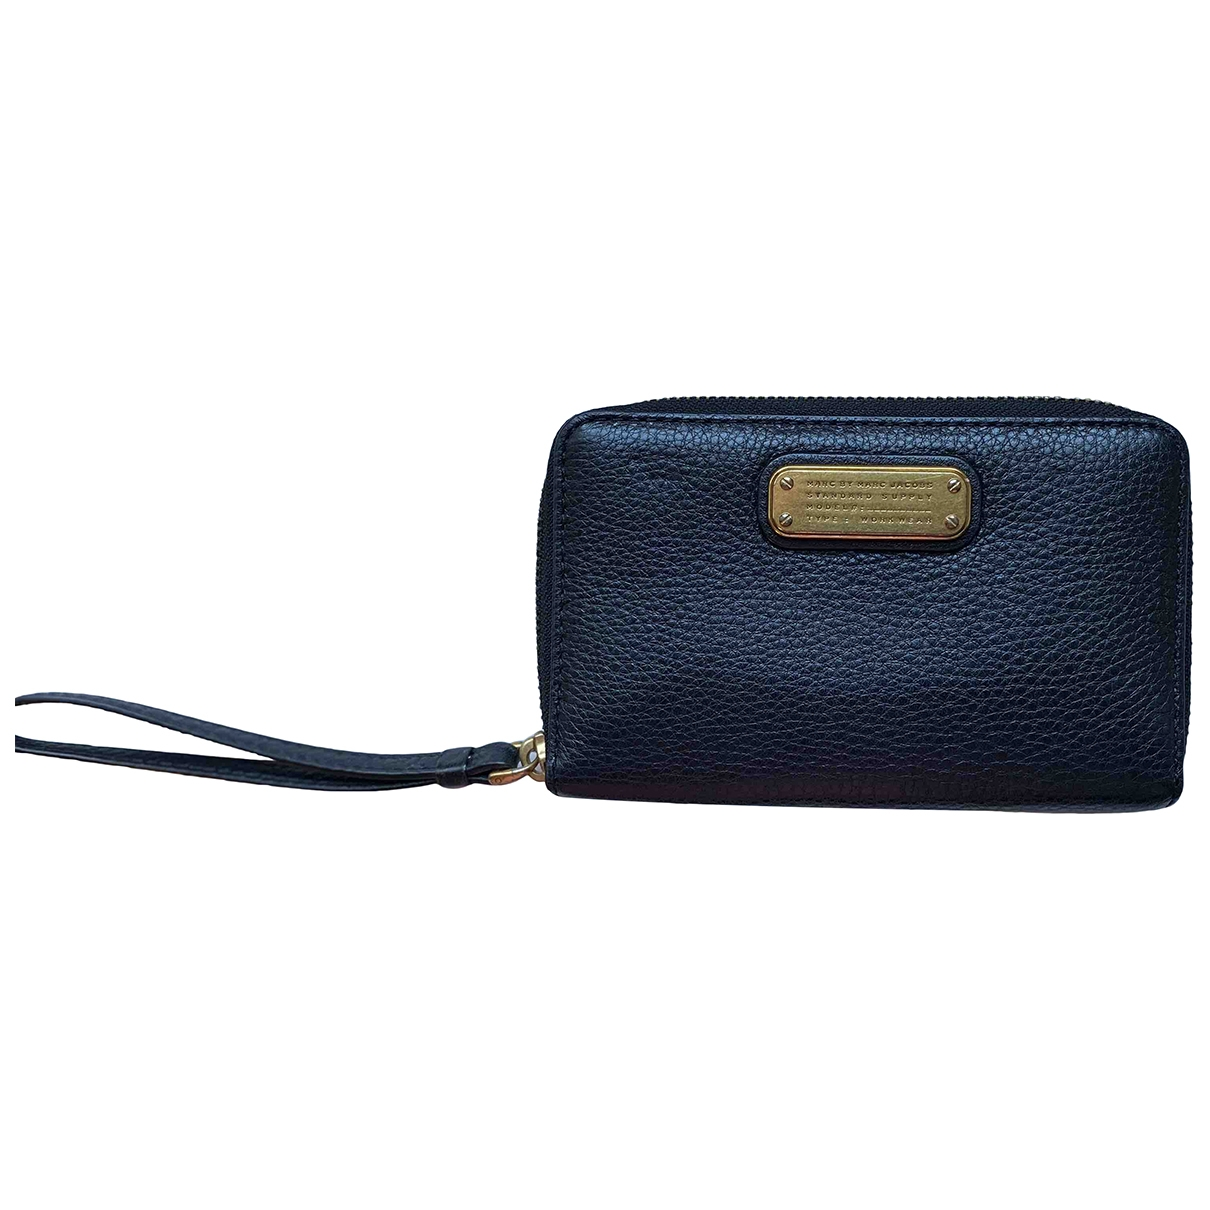 Marc By Marc Jacobs \N Black Leather wallet for Women \N